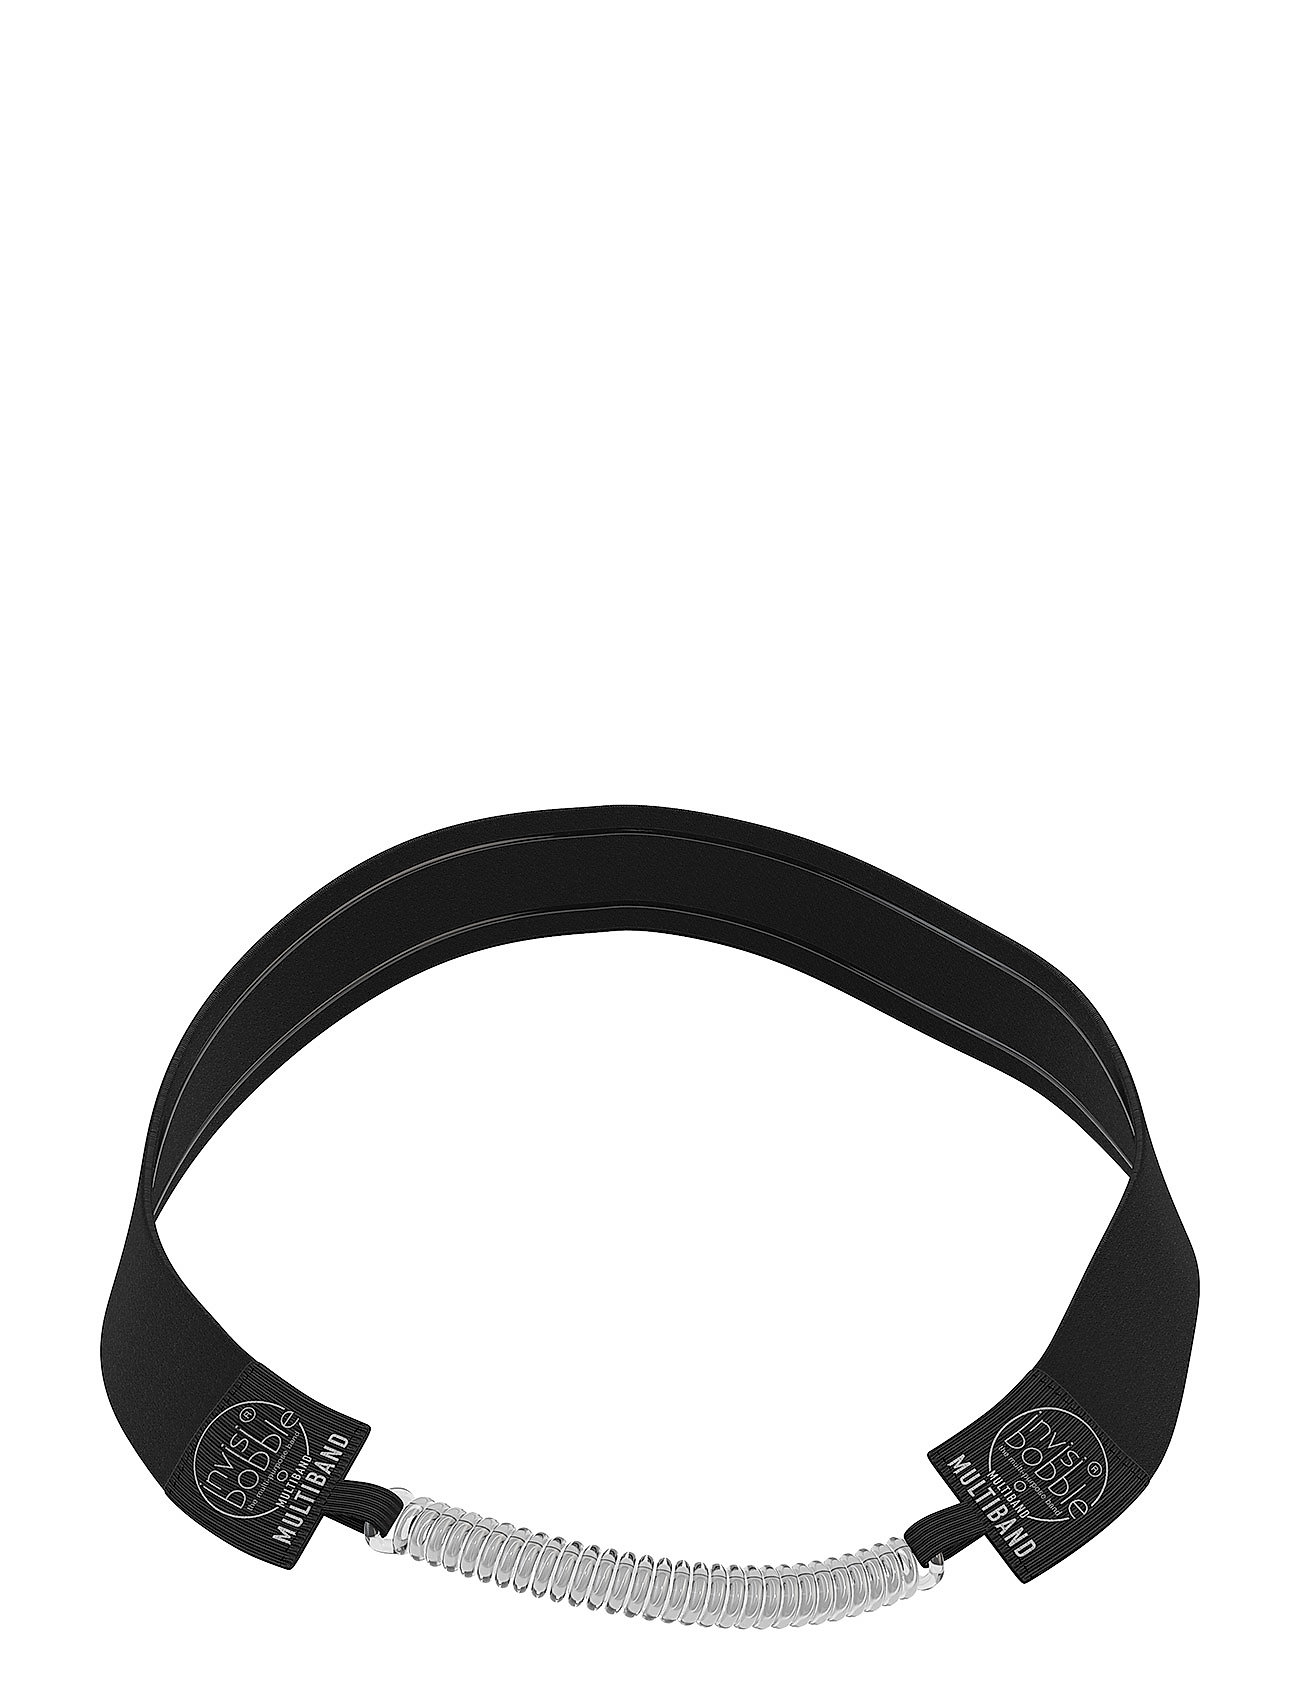 Image of Invisibobble Multiband True Black Beauty WOMEN Hair Hair Accessories Sort Invisibobble (3502964417)